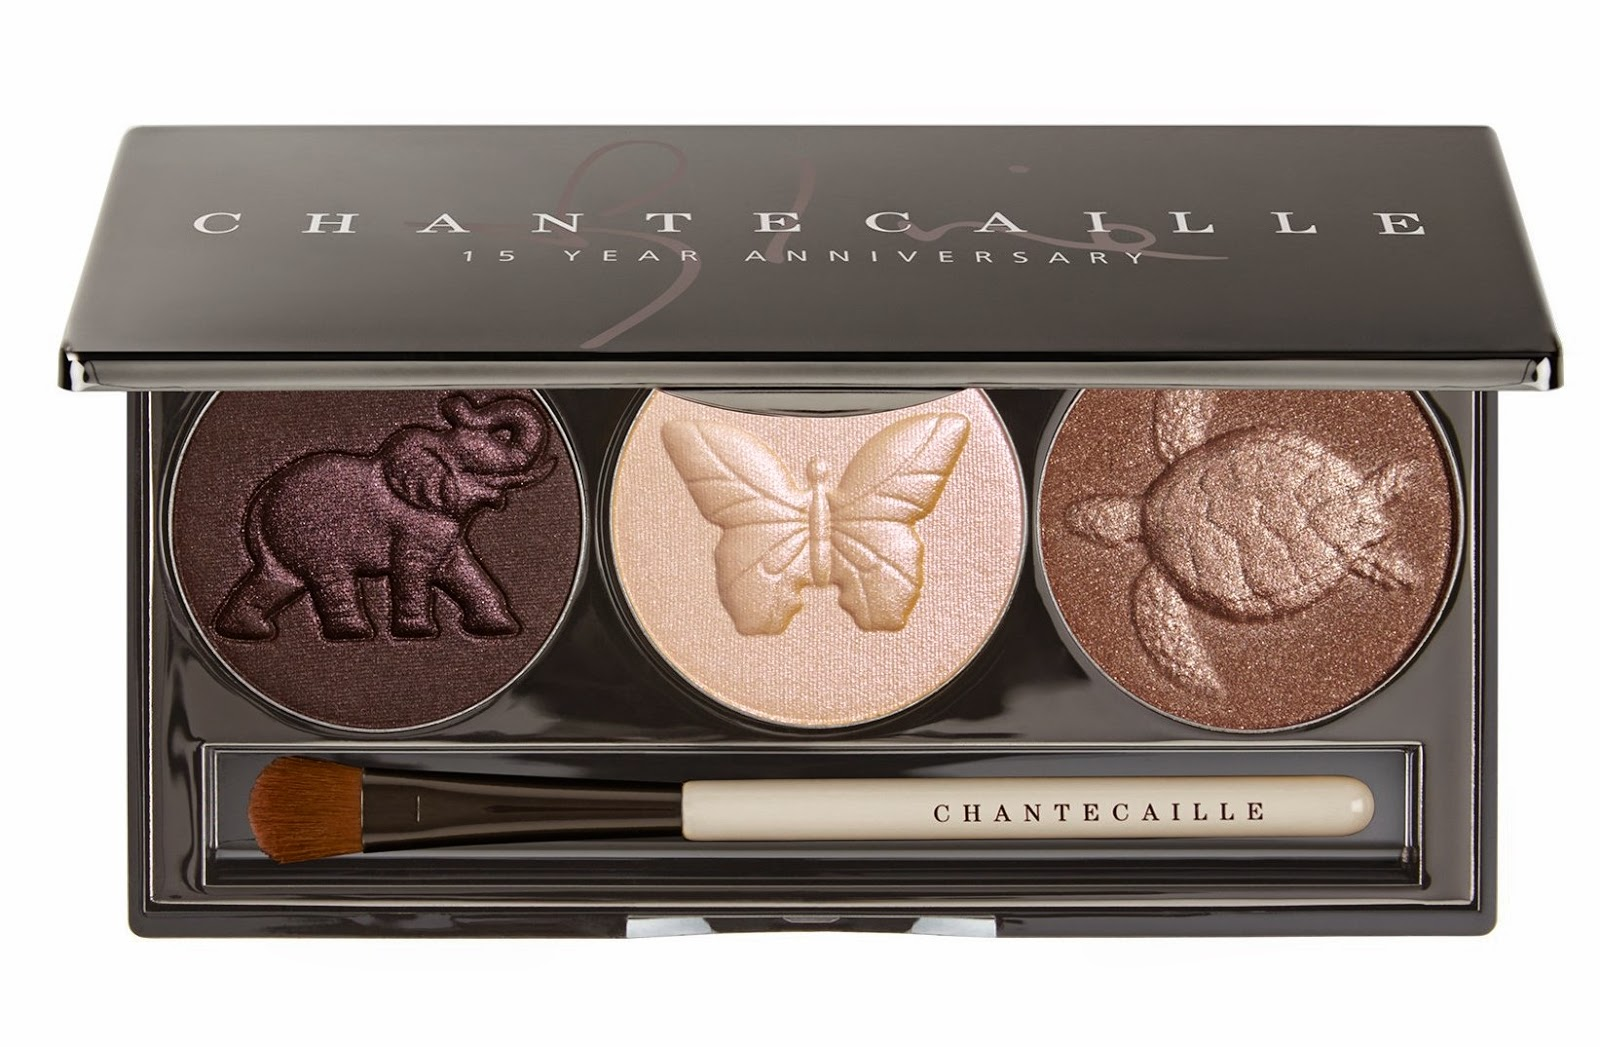 Chantecaille Autumn Winter 2014: 15th Anniversary Palette